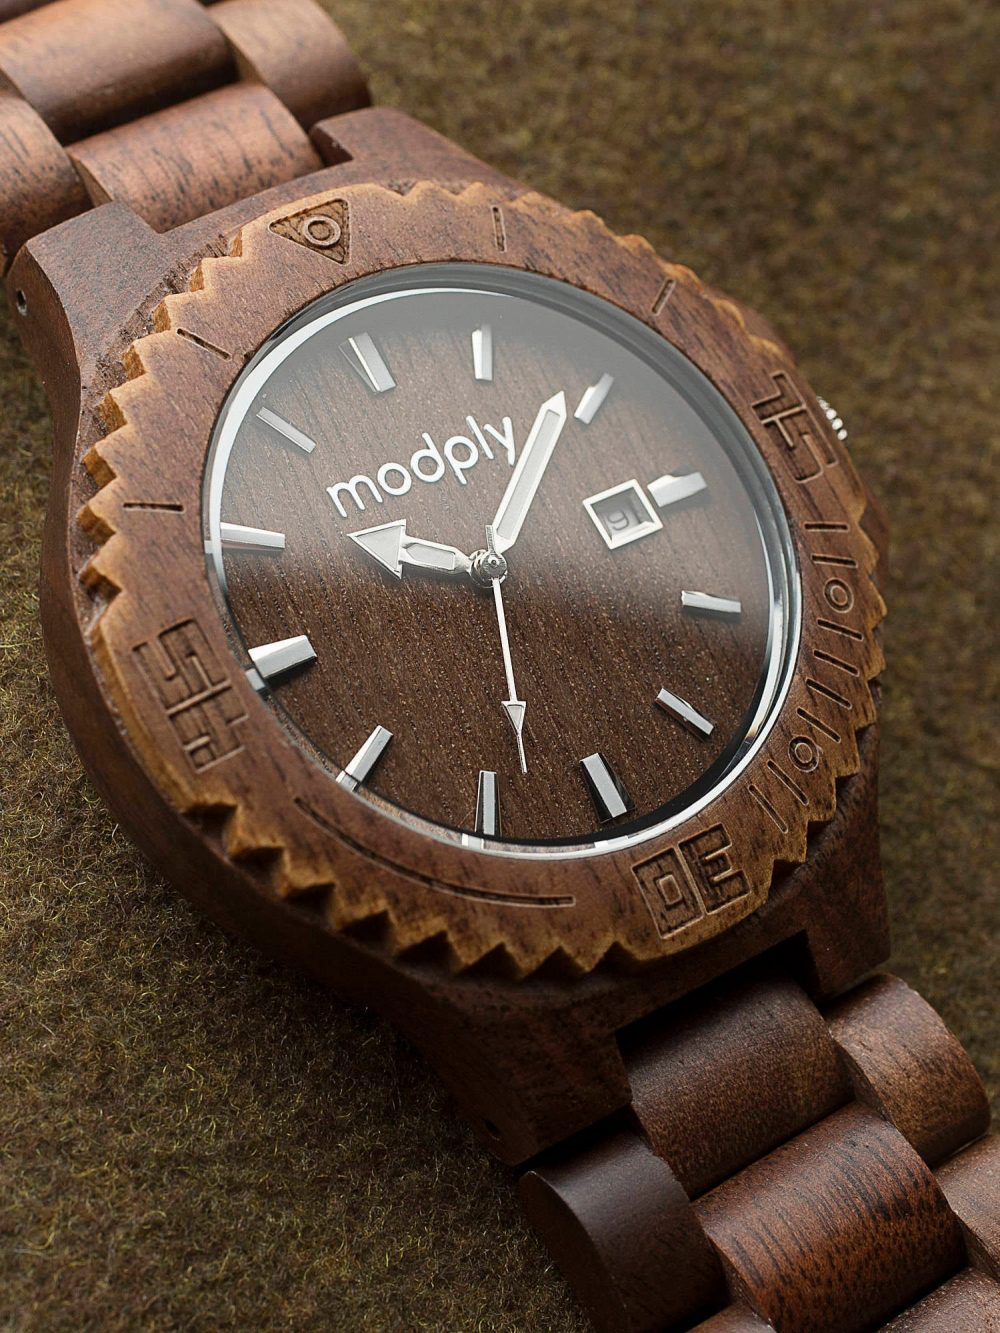 Groom Gift From Bride, Best Man Watch, Groomsmen Wedding Engraved Wood For Him, Custom Personalized Watch